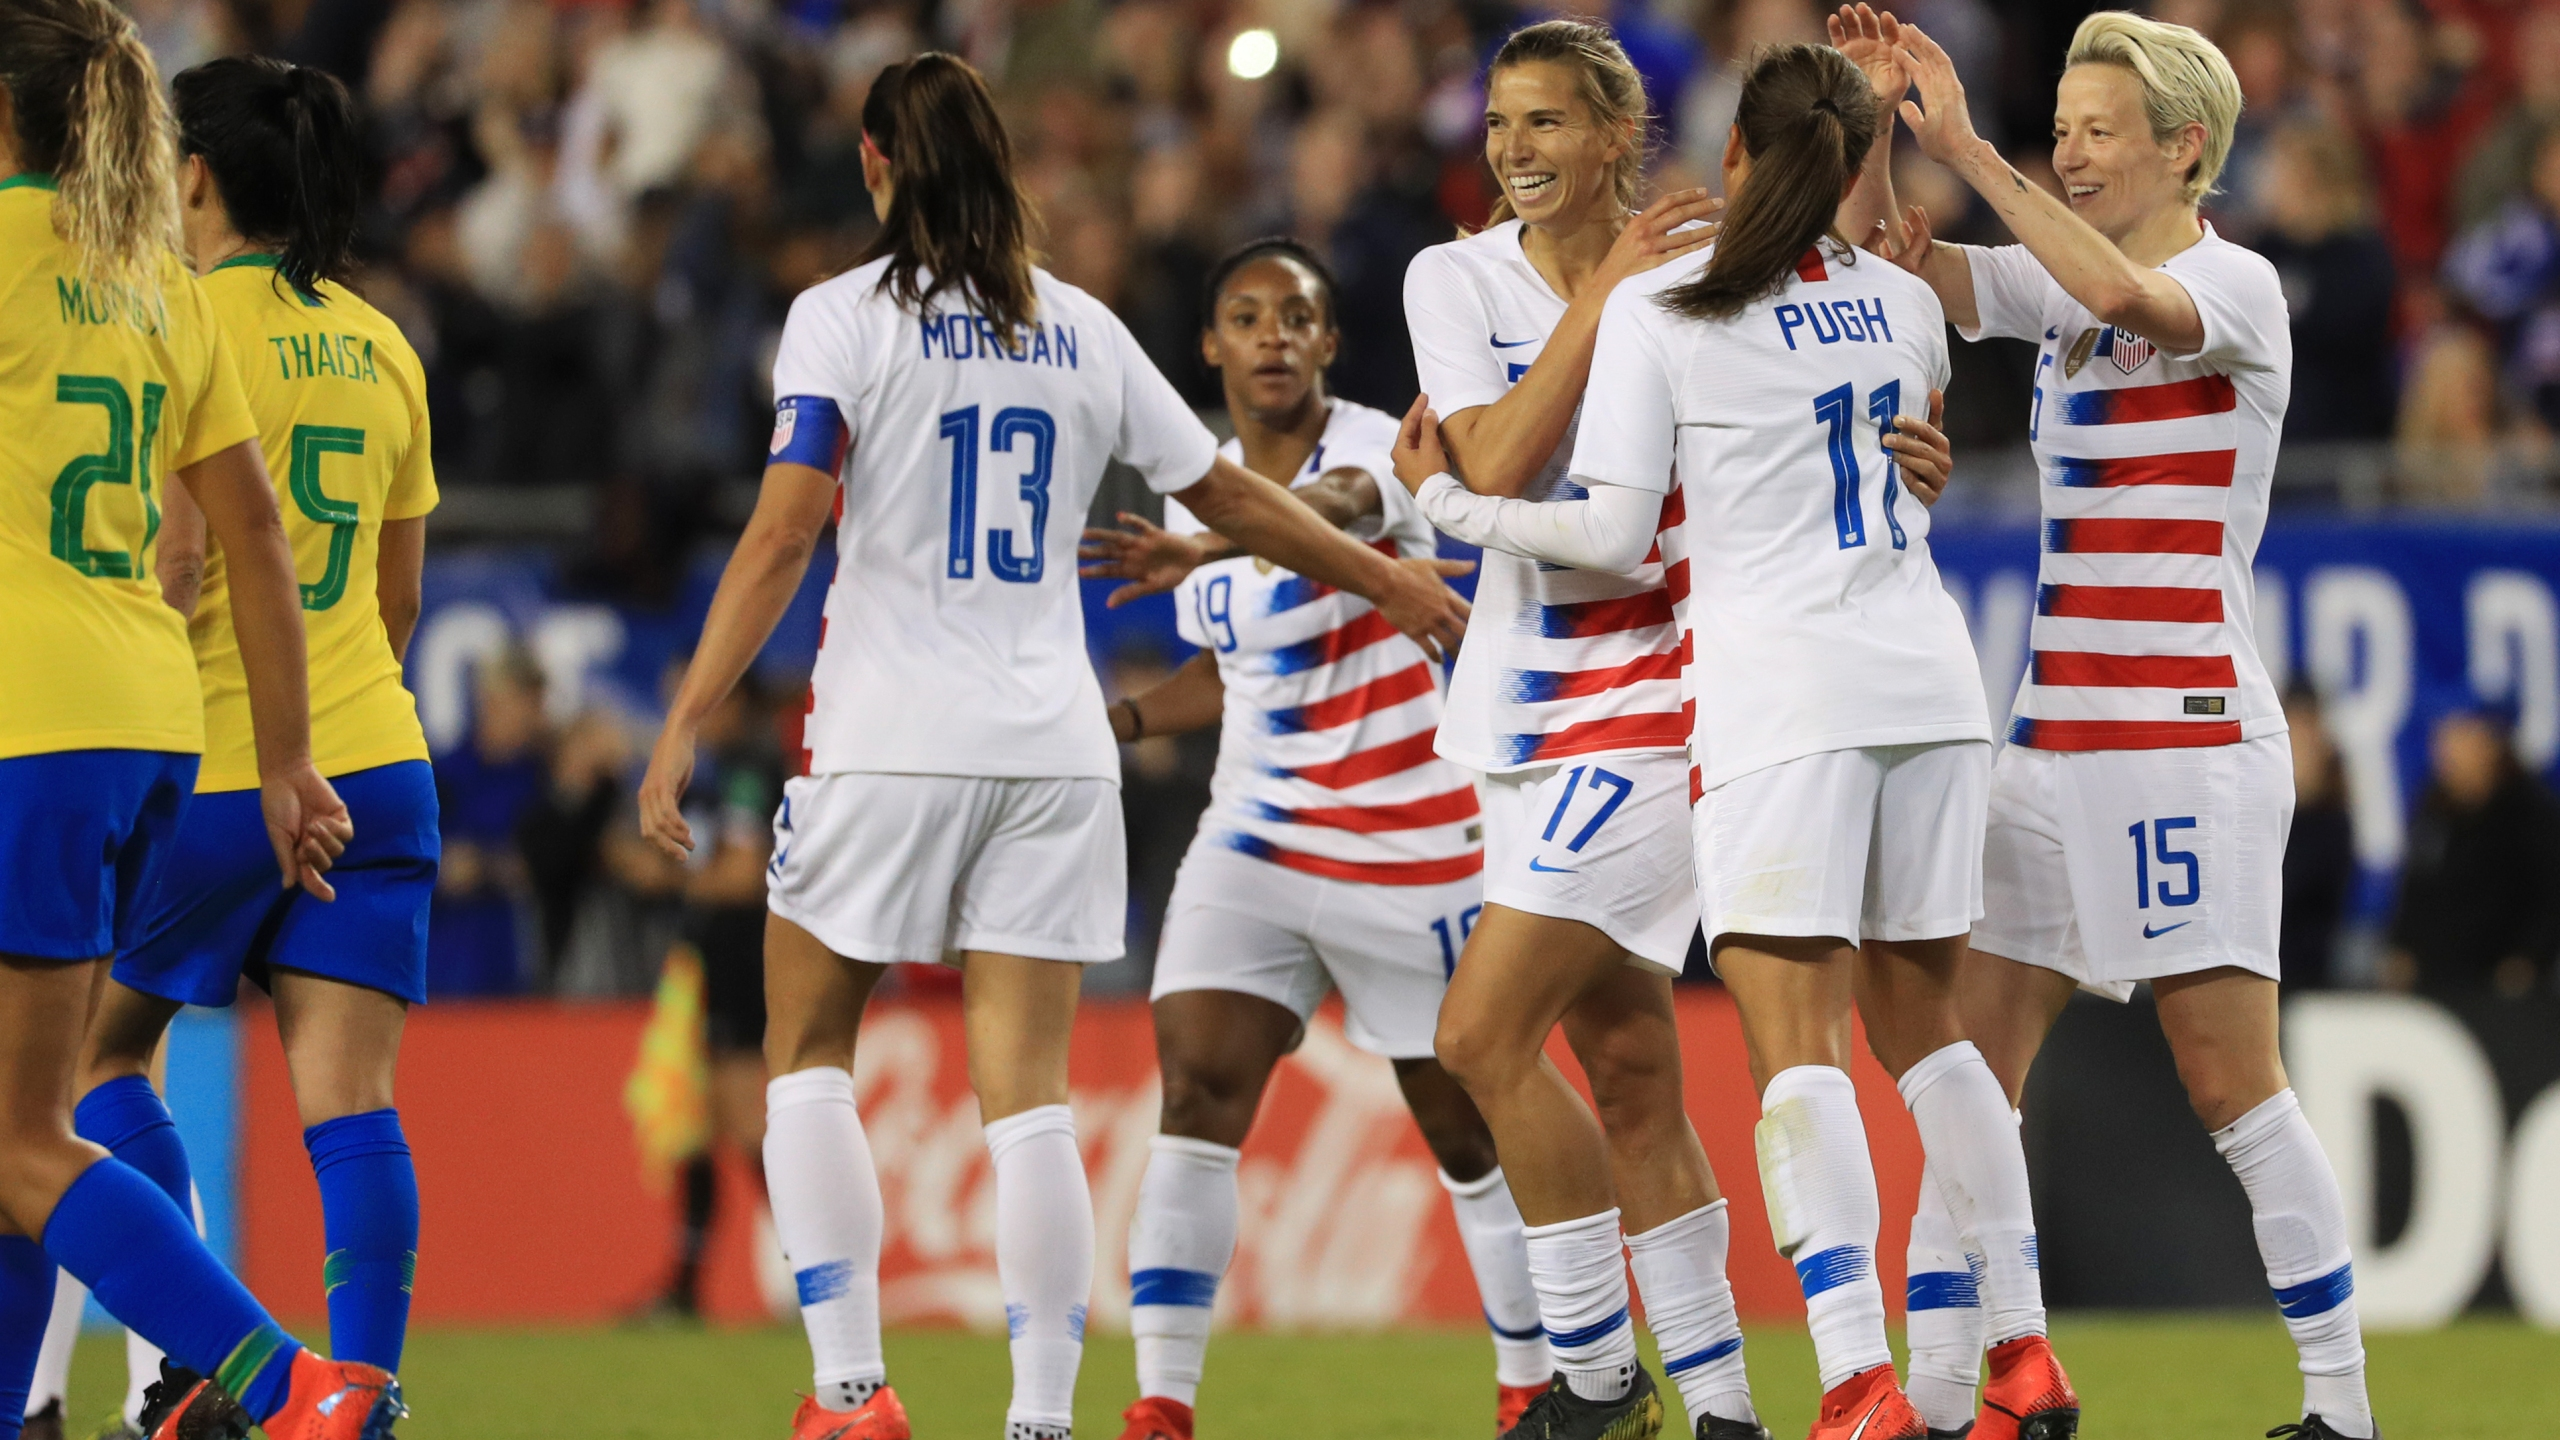 """Megan Rapinoe, Mallory Pugh and Alex Morgan celebrate with Tobin Heath after a goal against Brazil in the first half of the """"She Believes Cup"""" at Raymond James Stadium on March 5, 2019, in Tampa, Florida. (Credit: Mike Ehrmann/Getty Images)"""